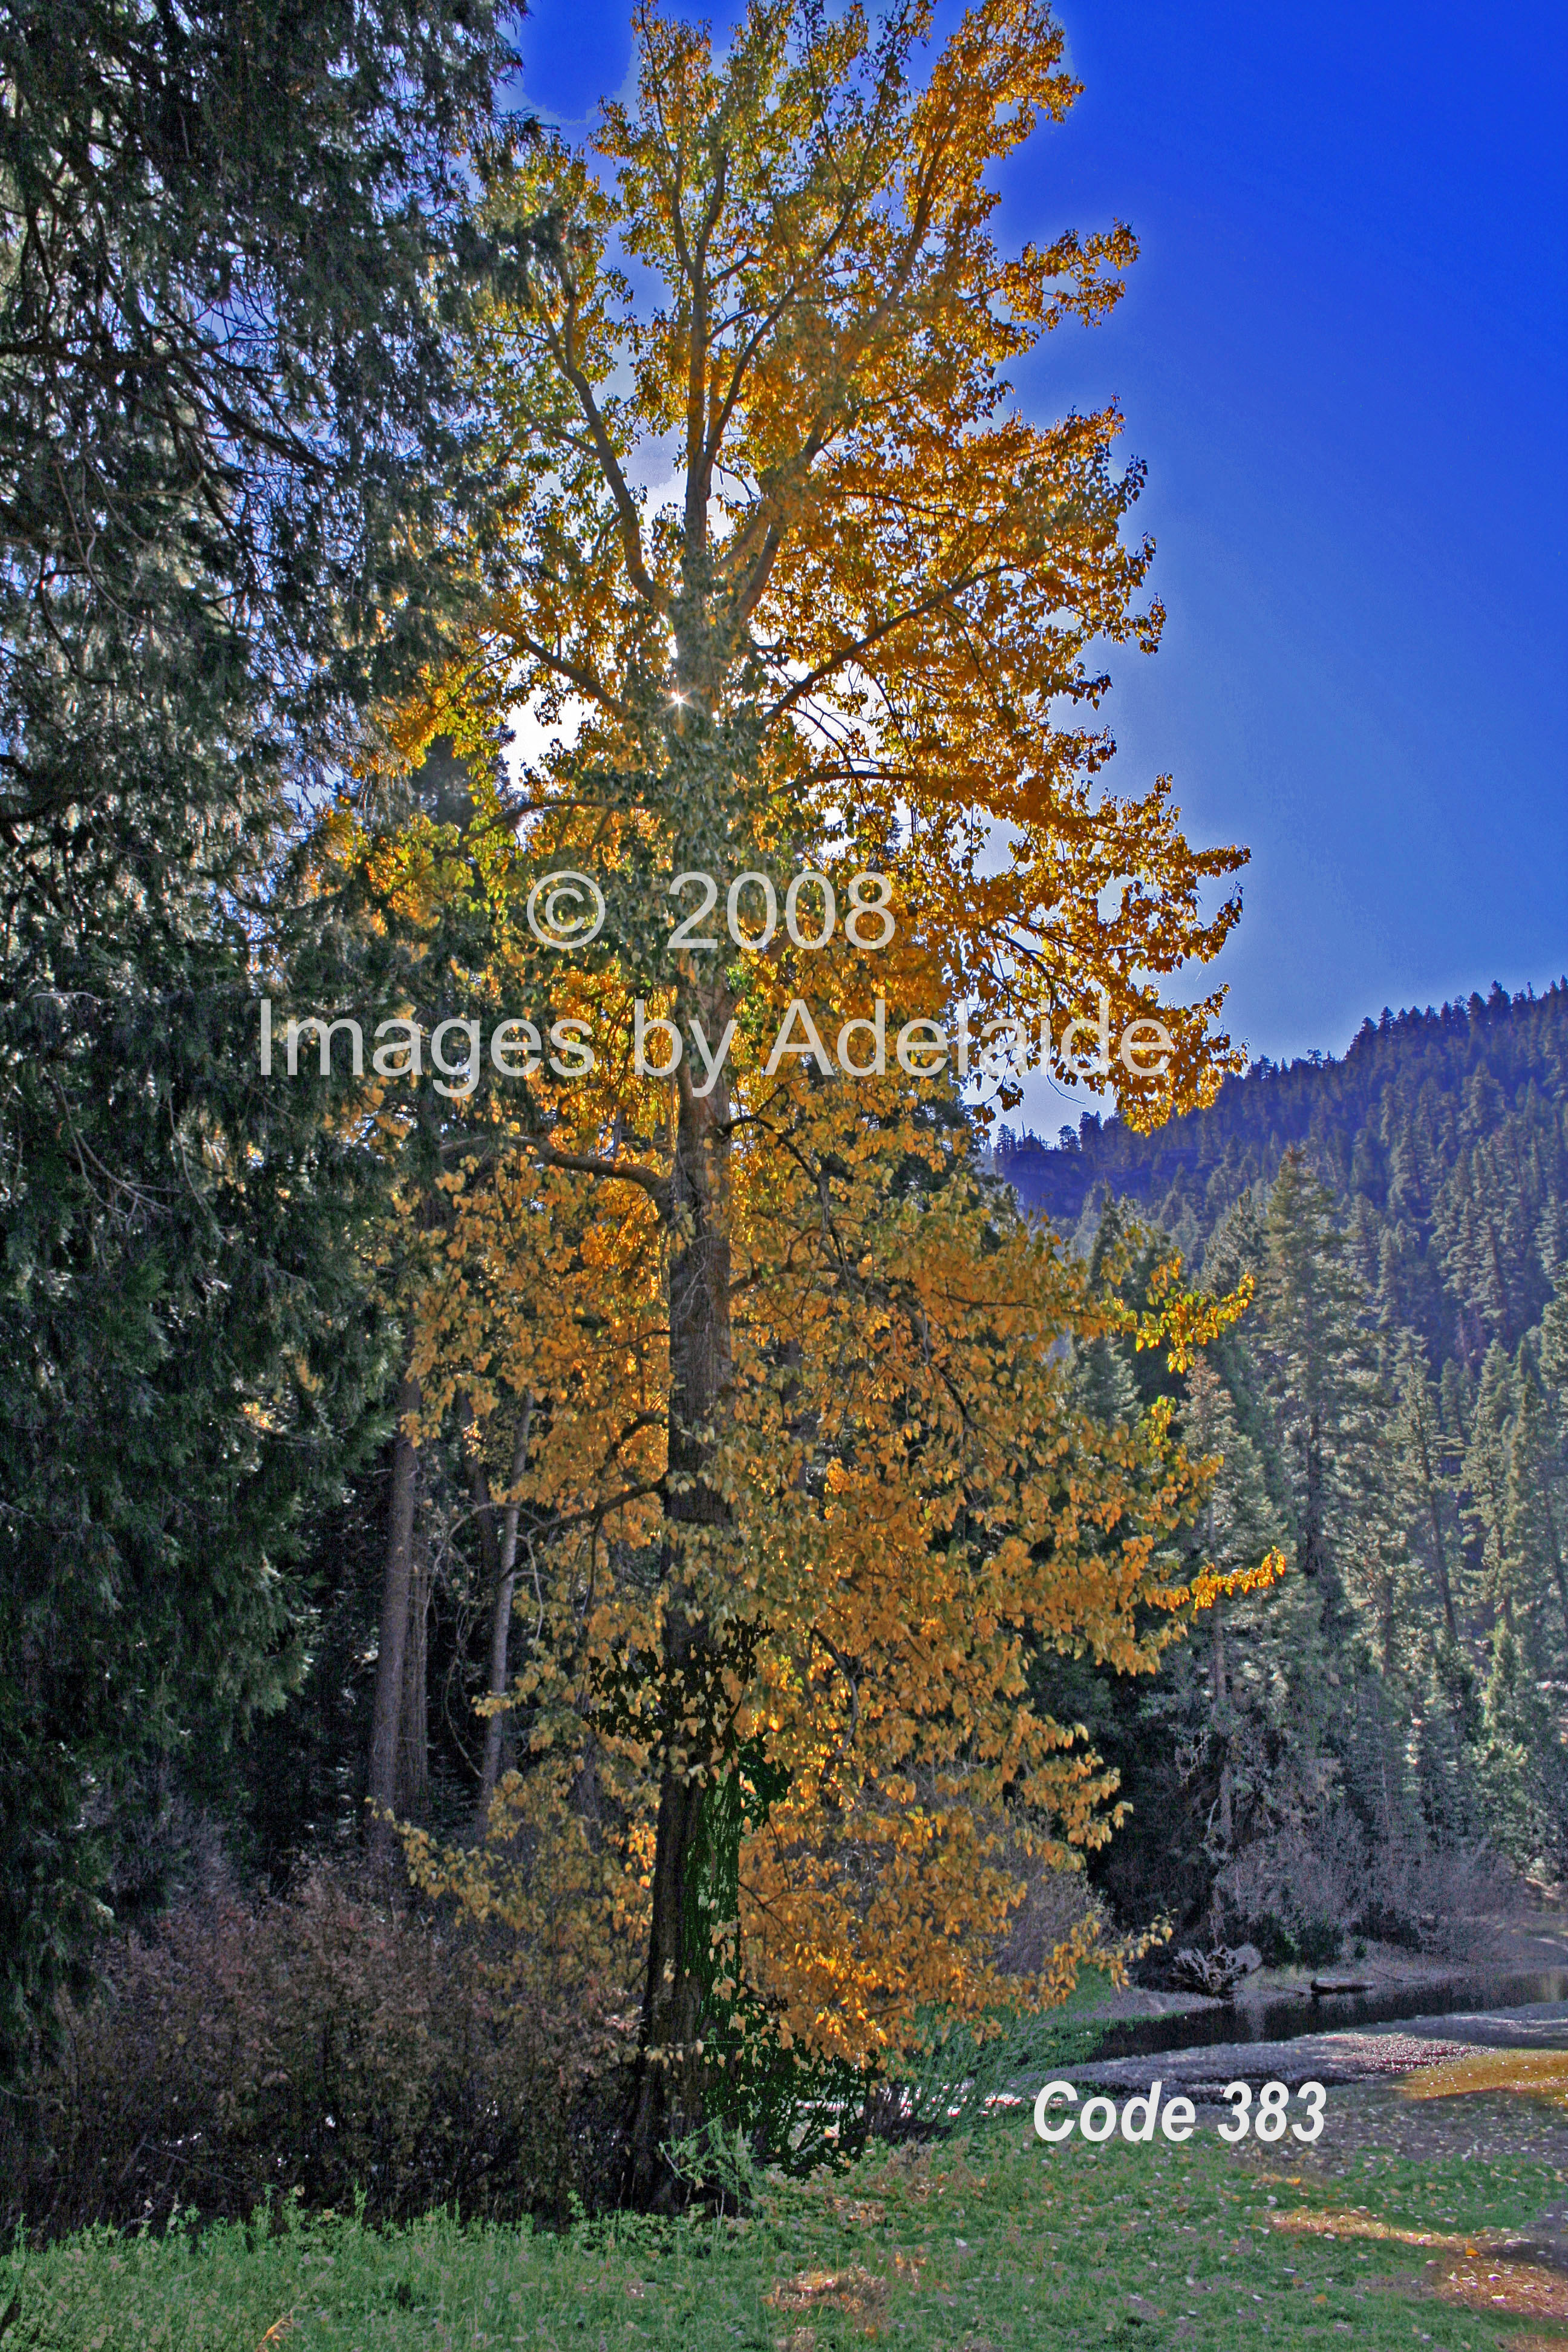 Code 382 bell meadow autumn color